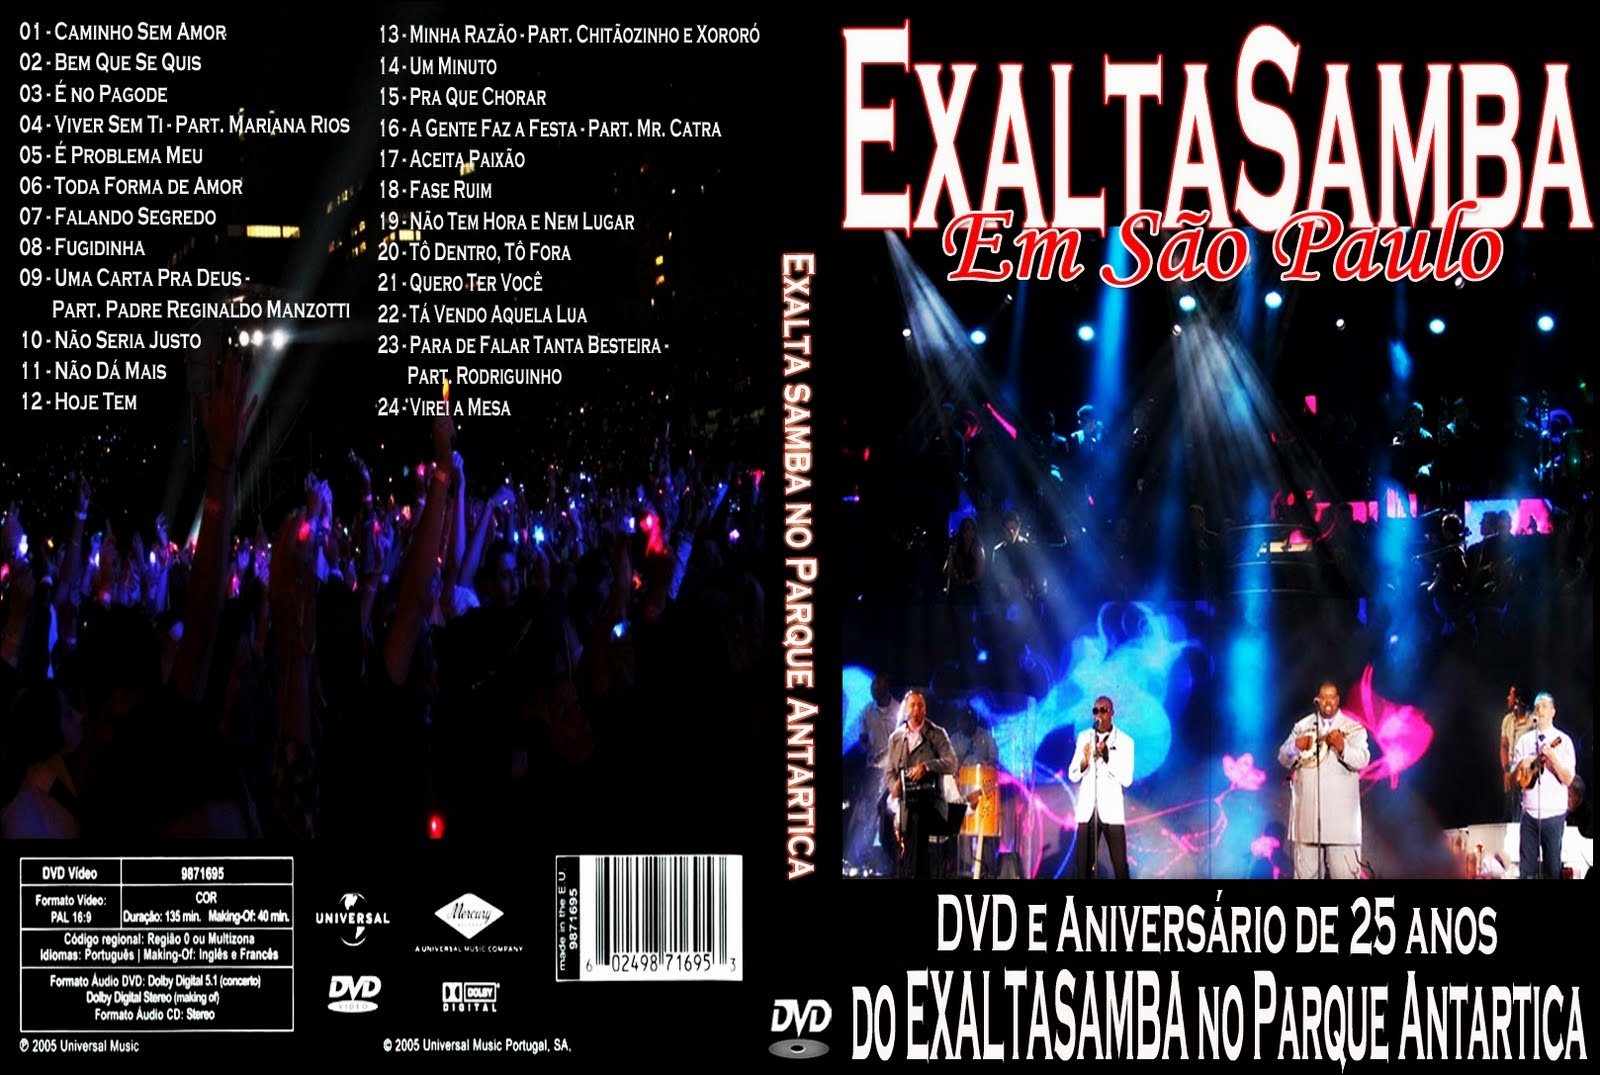 DOWNLOAD CD GRATUITO 2009 EXALTASAMBA